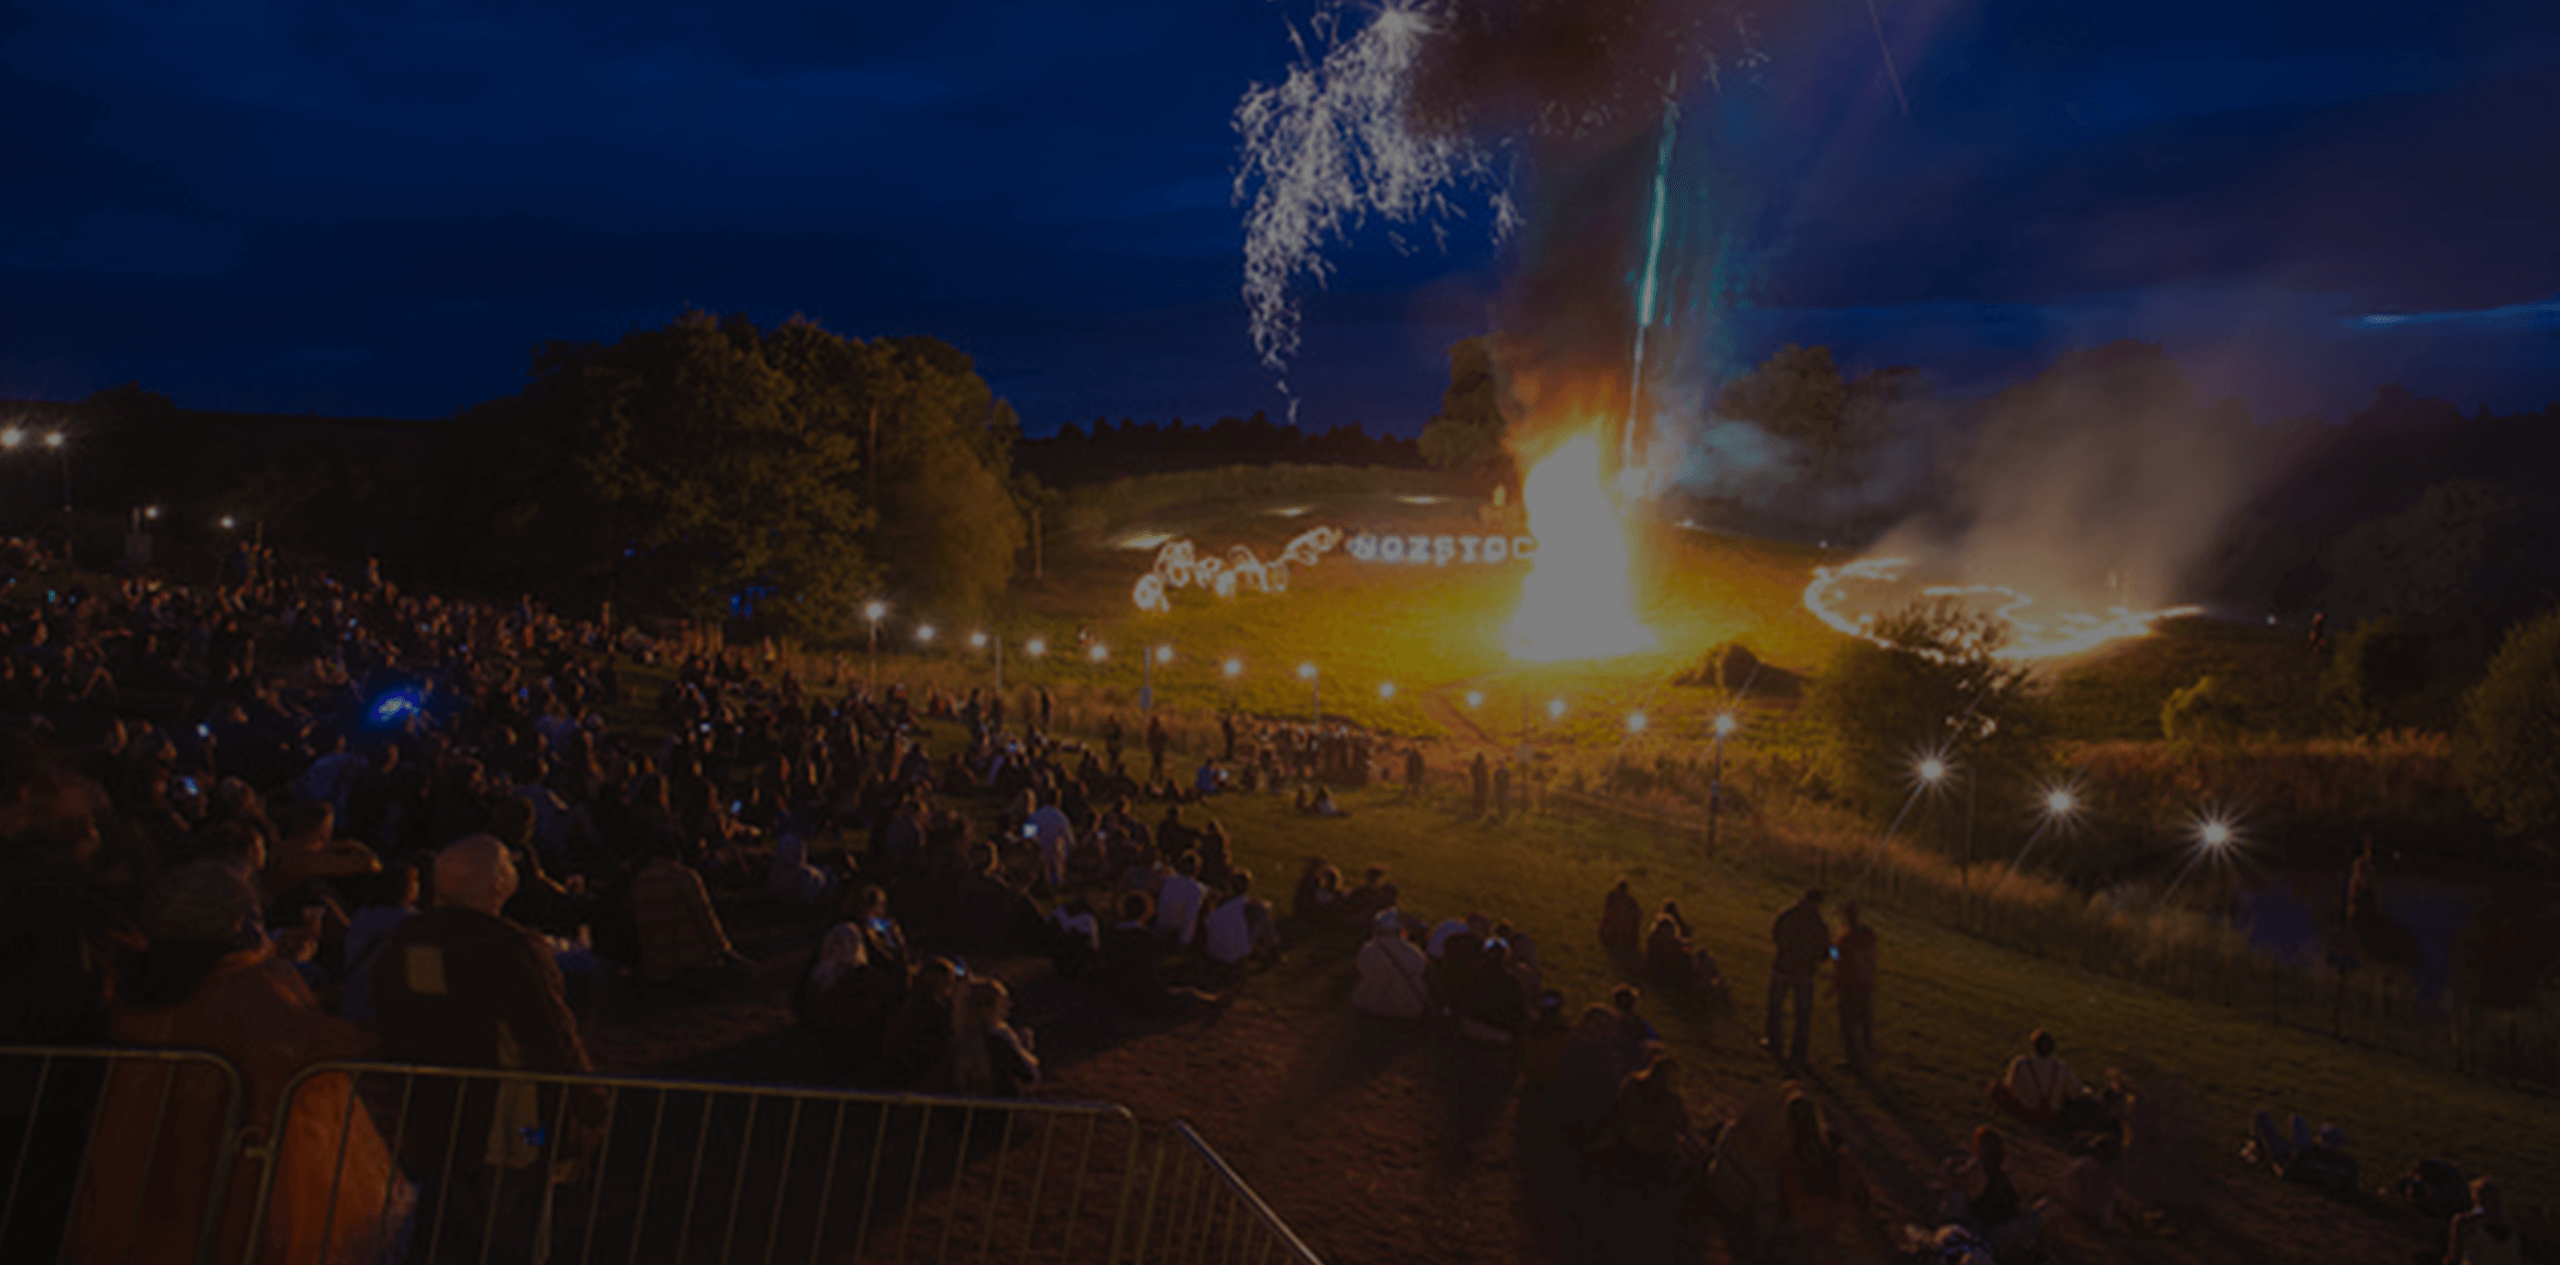 Nozstock shortlisted for Best Dance Event and Best Family Festival in the UK Festival Awards